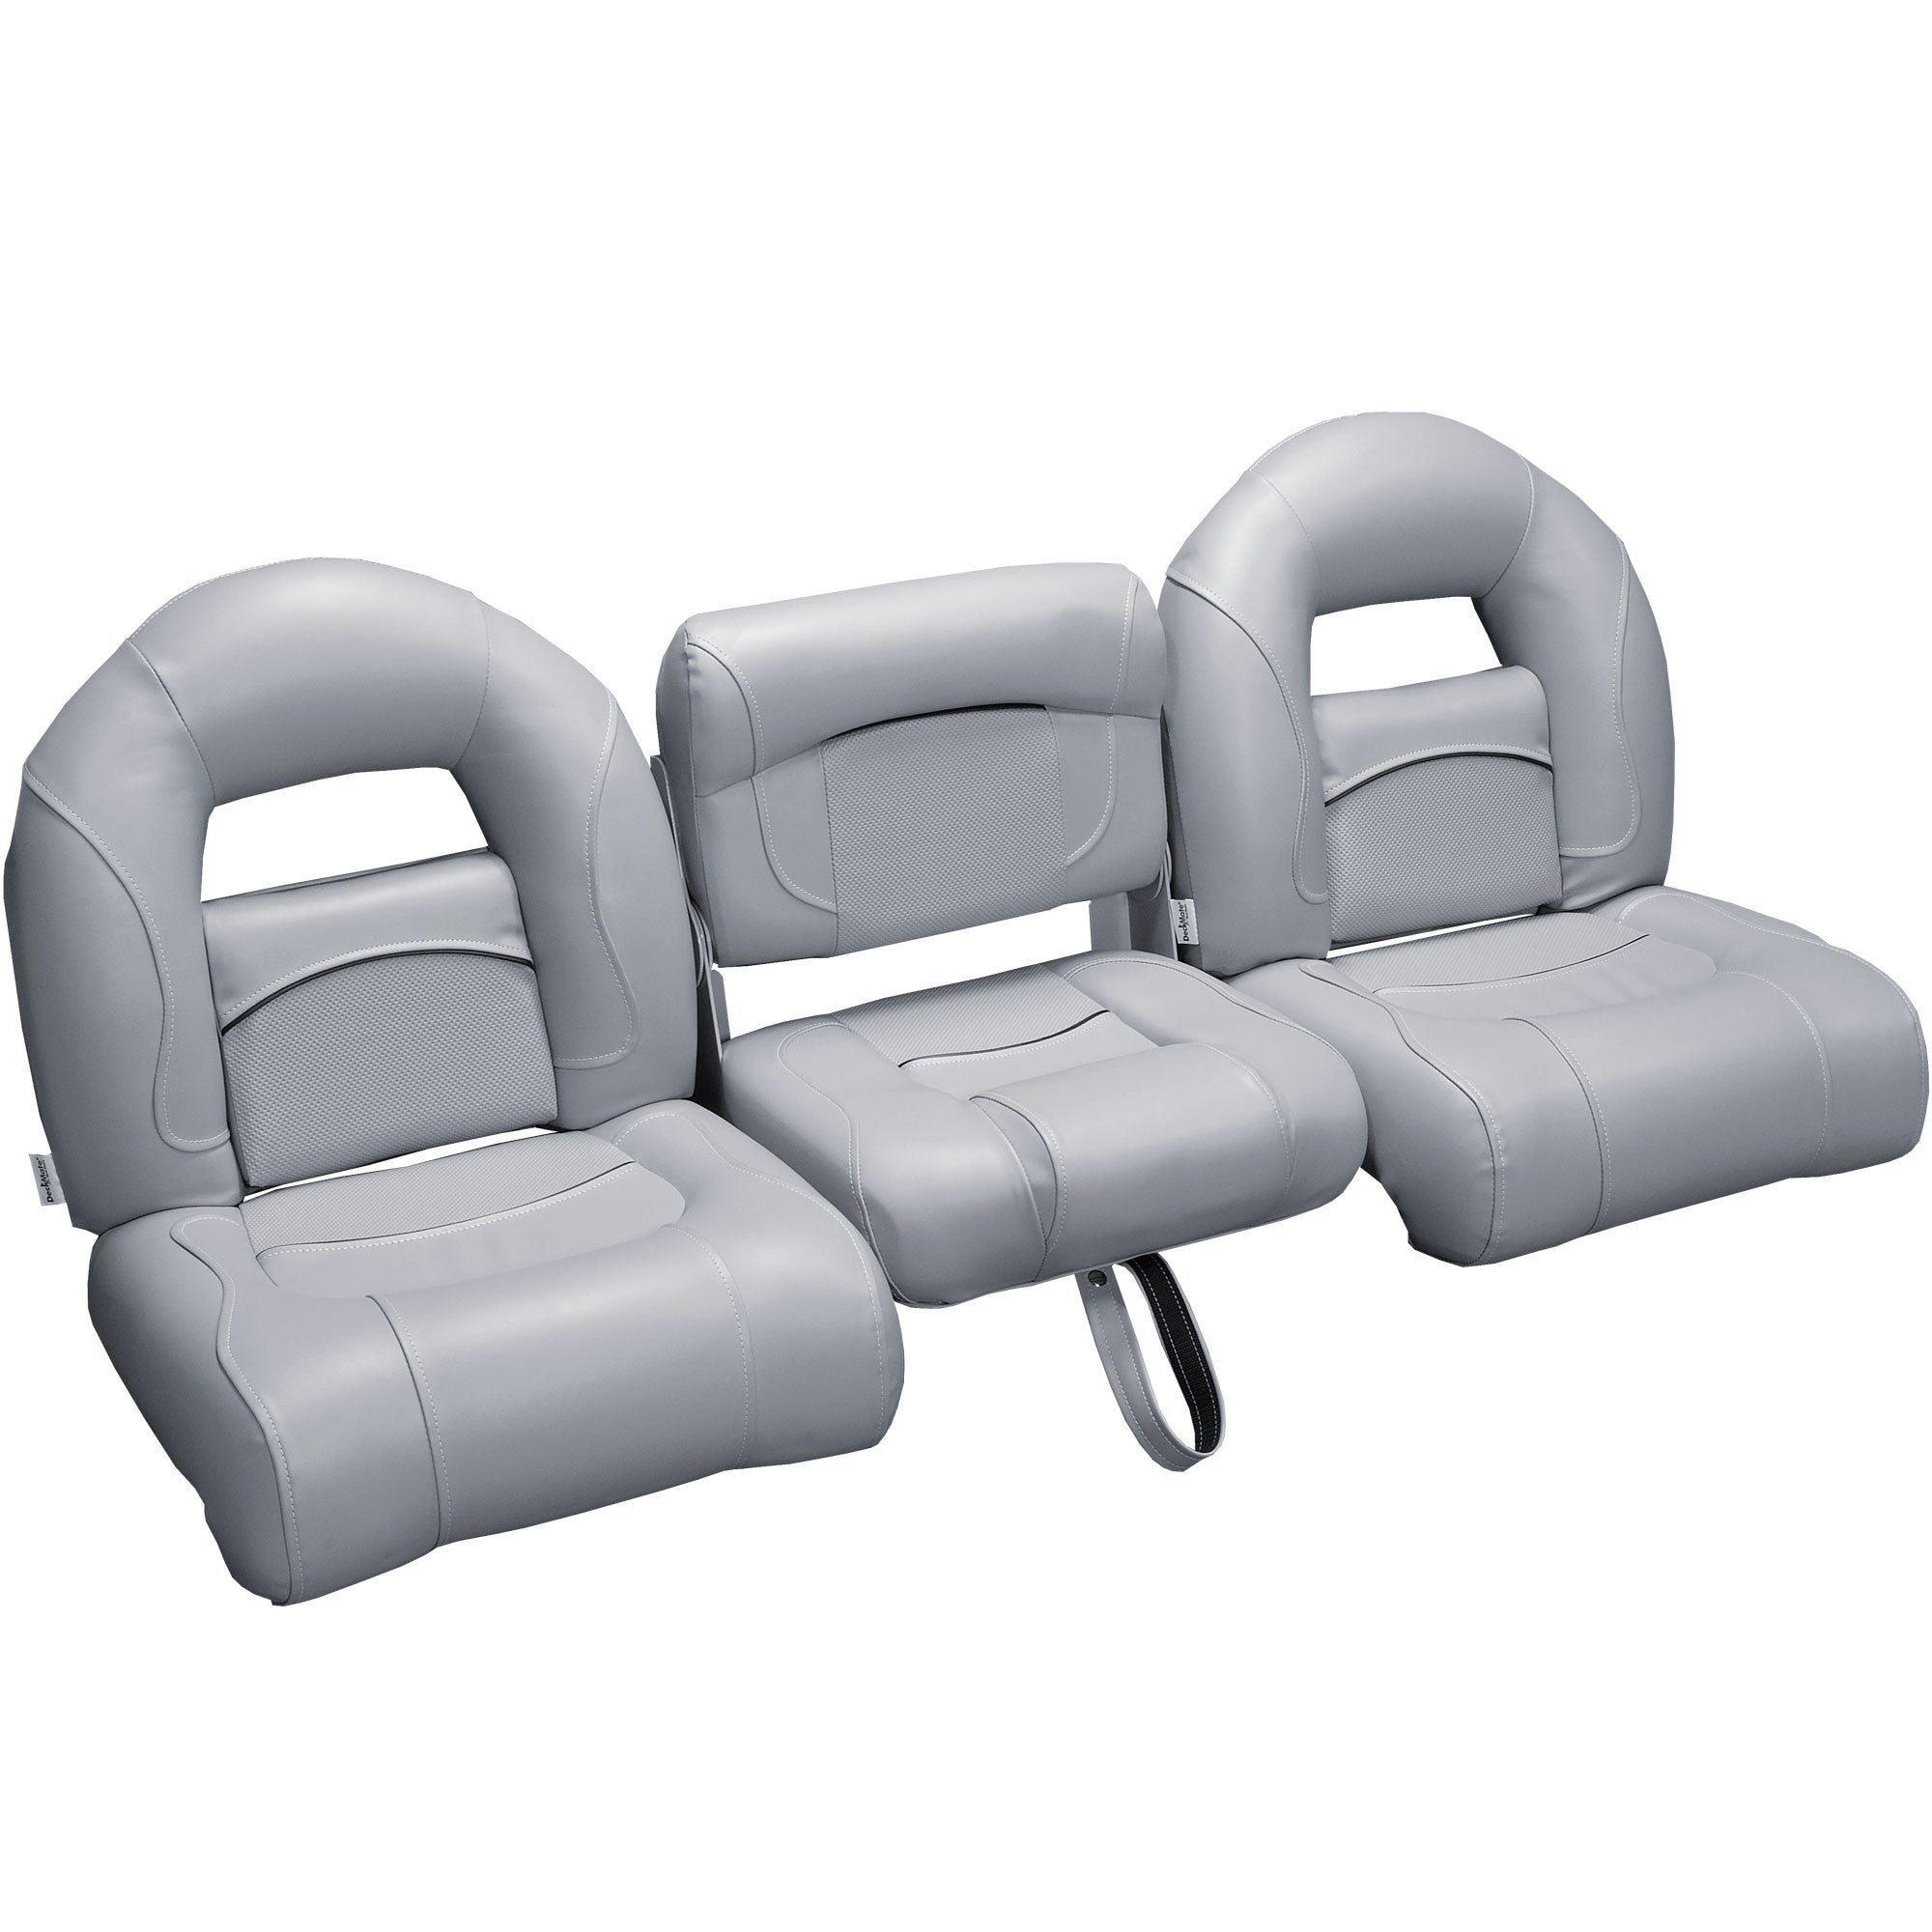 Images of Nitro Bass Boat Seats - #rock-cafe